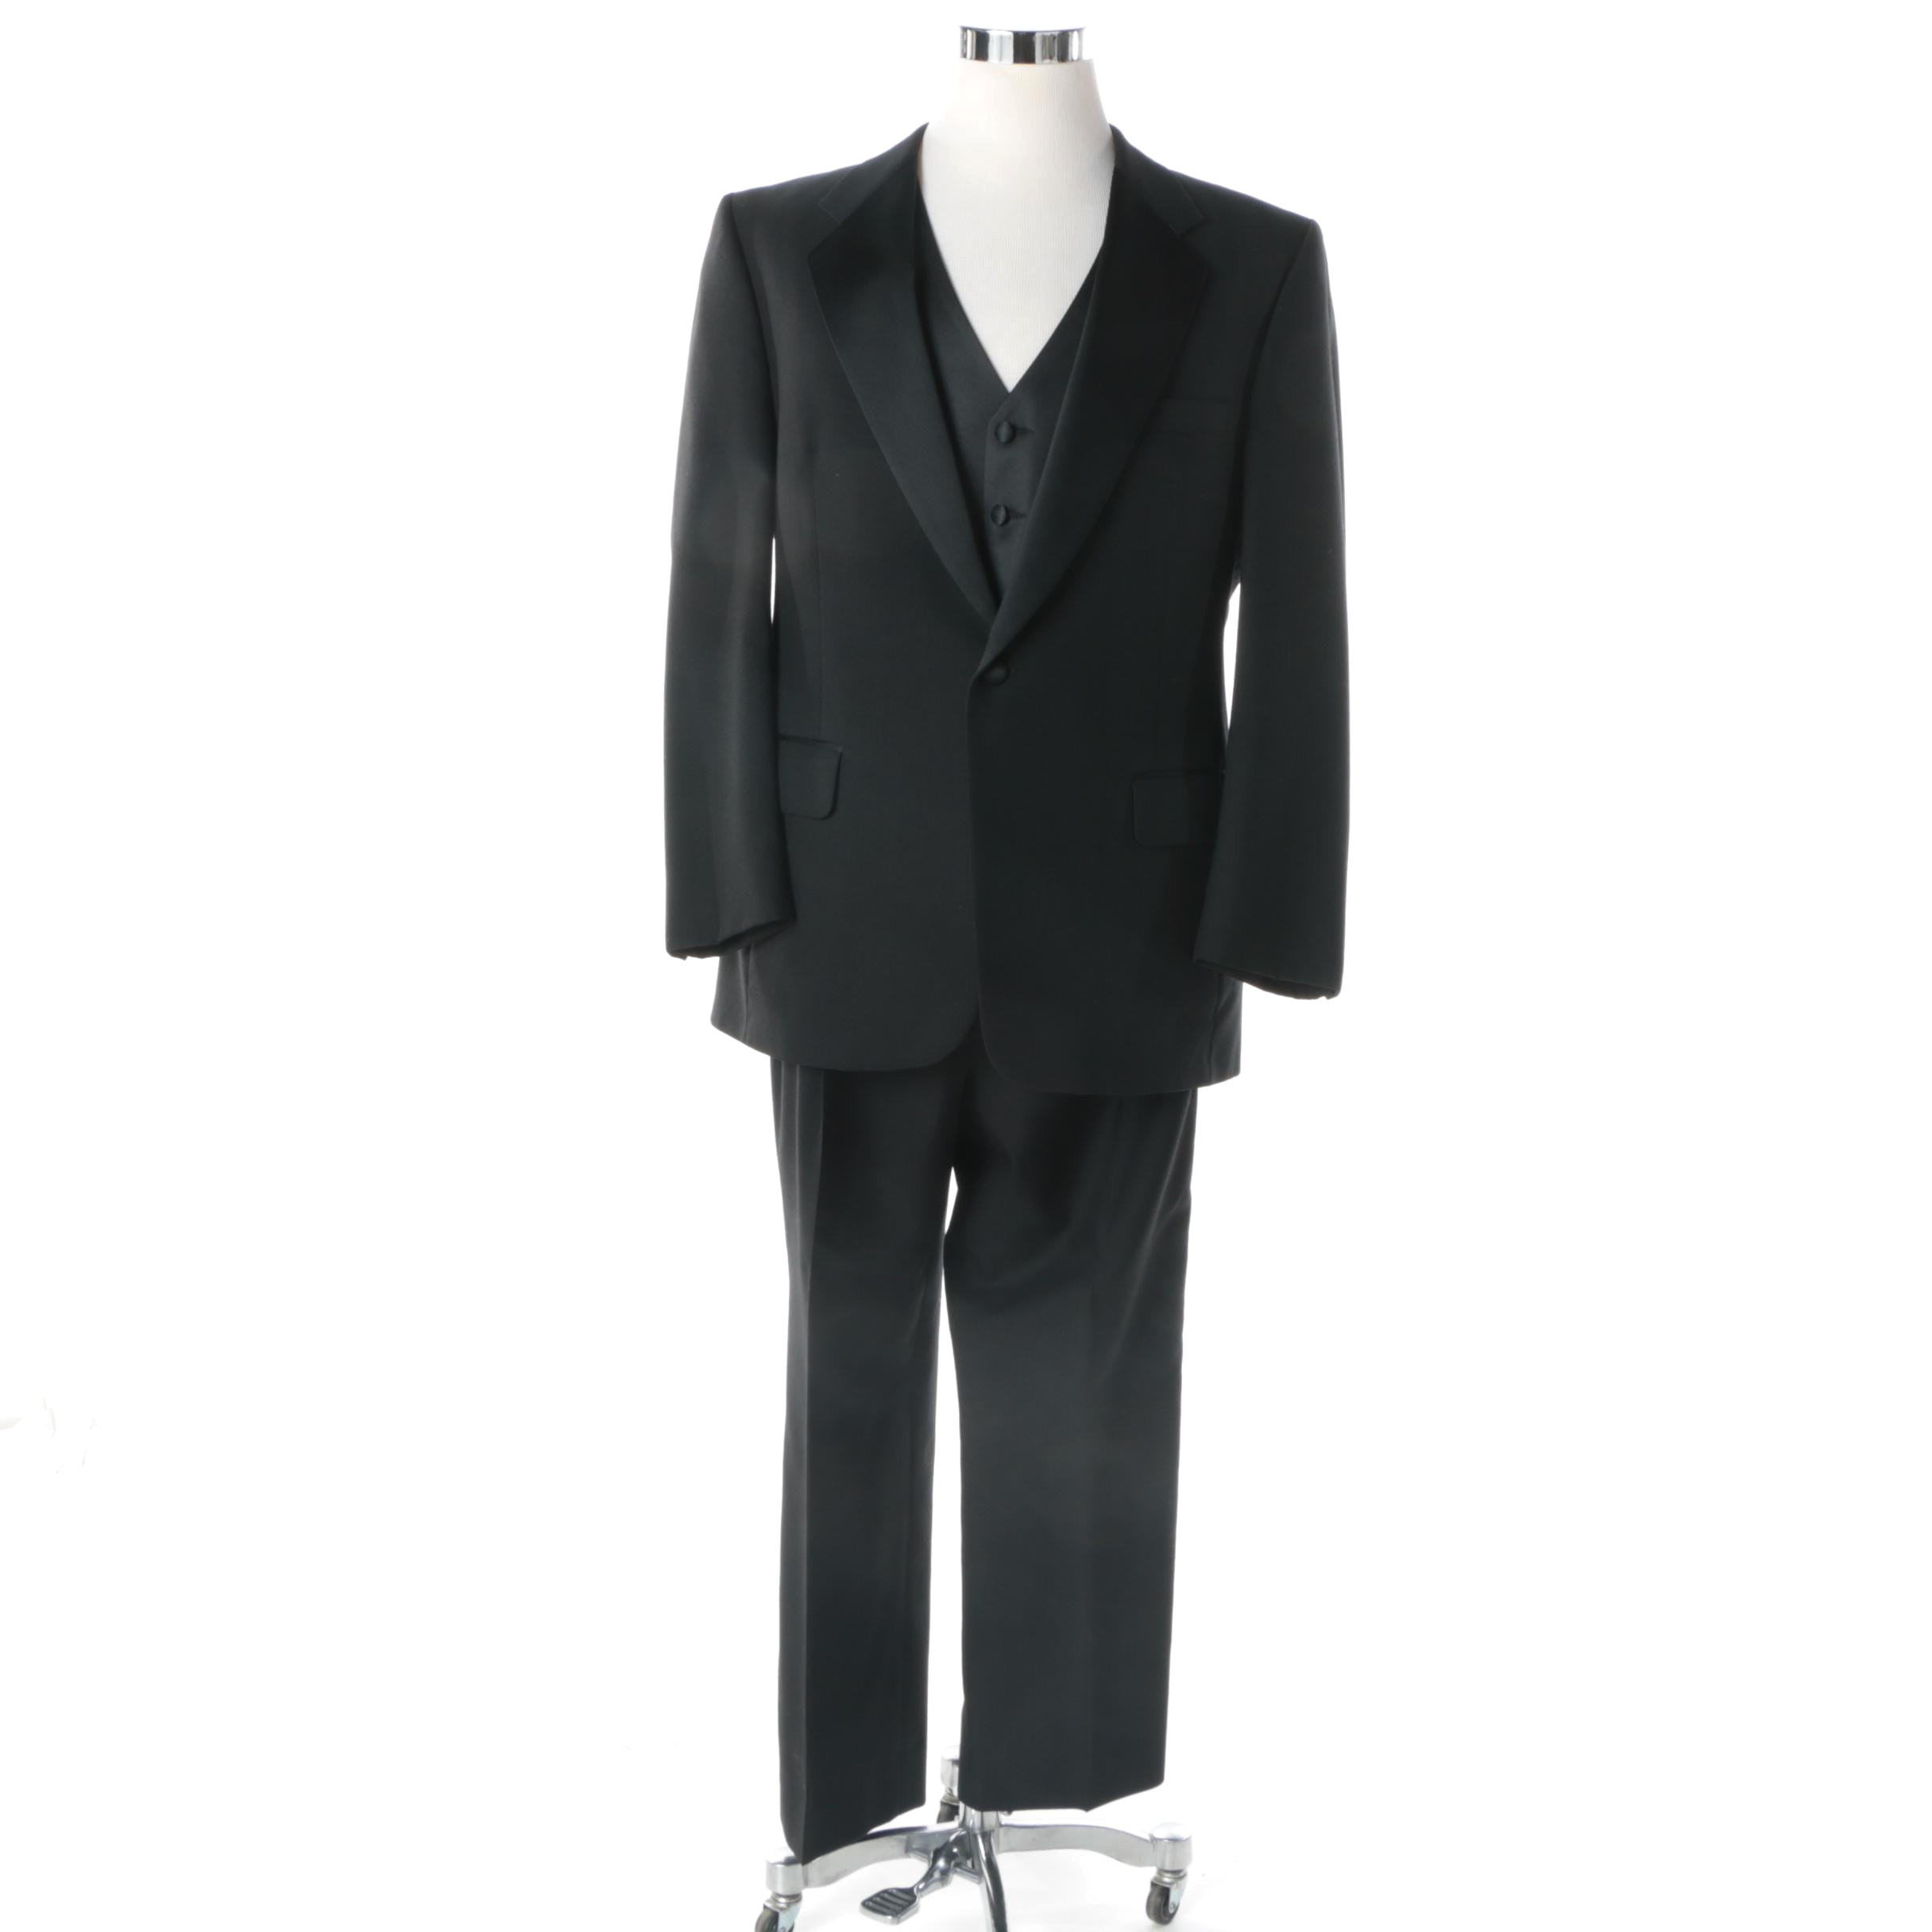 Men's Marshall Stuart Black Poly-Blend Three-Piece Tuxedo